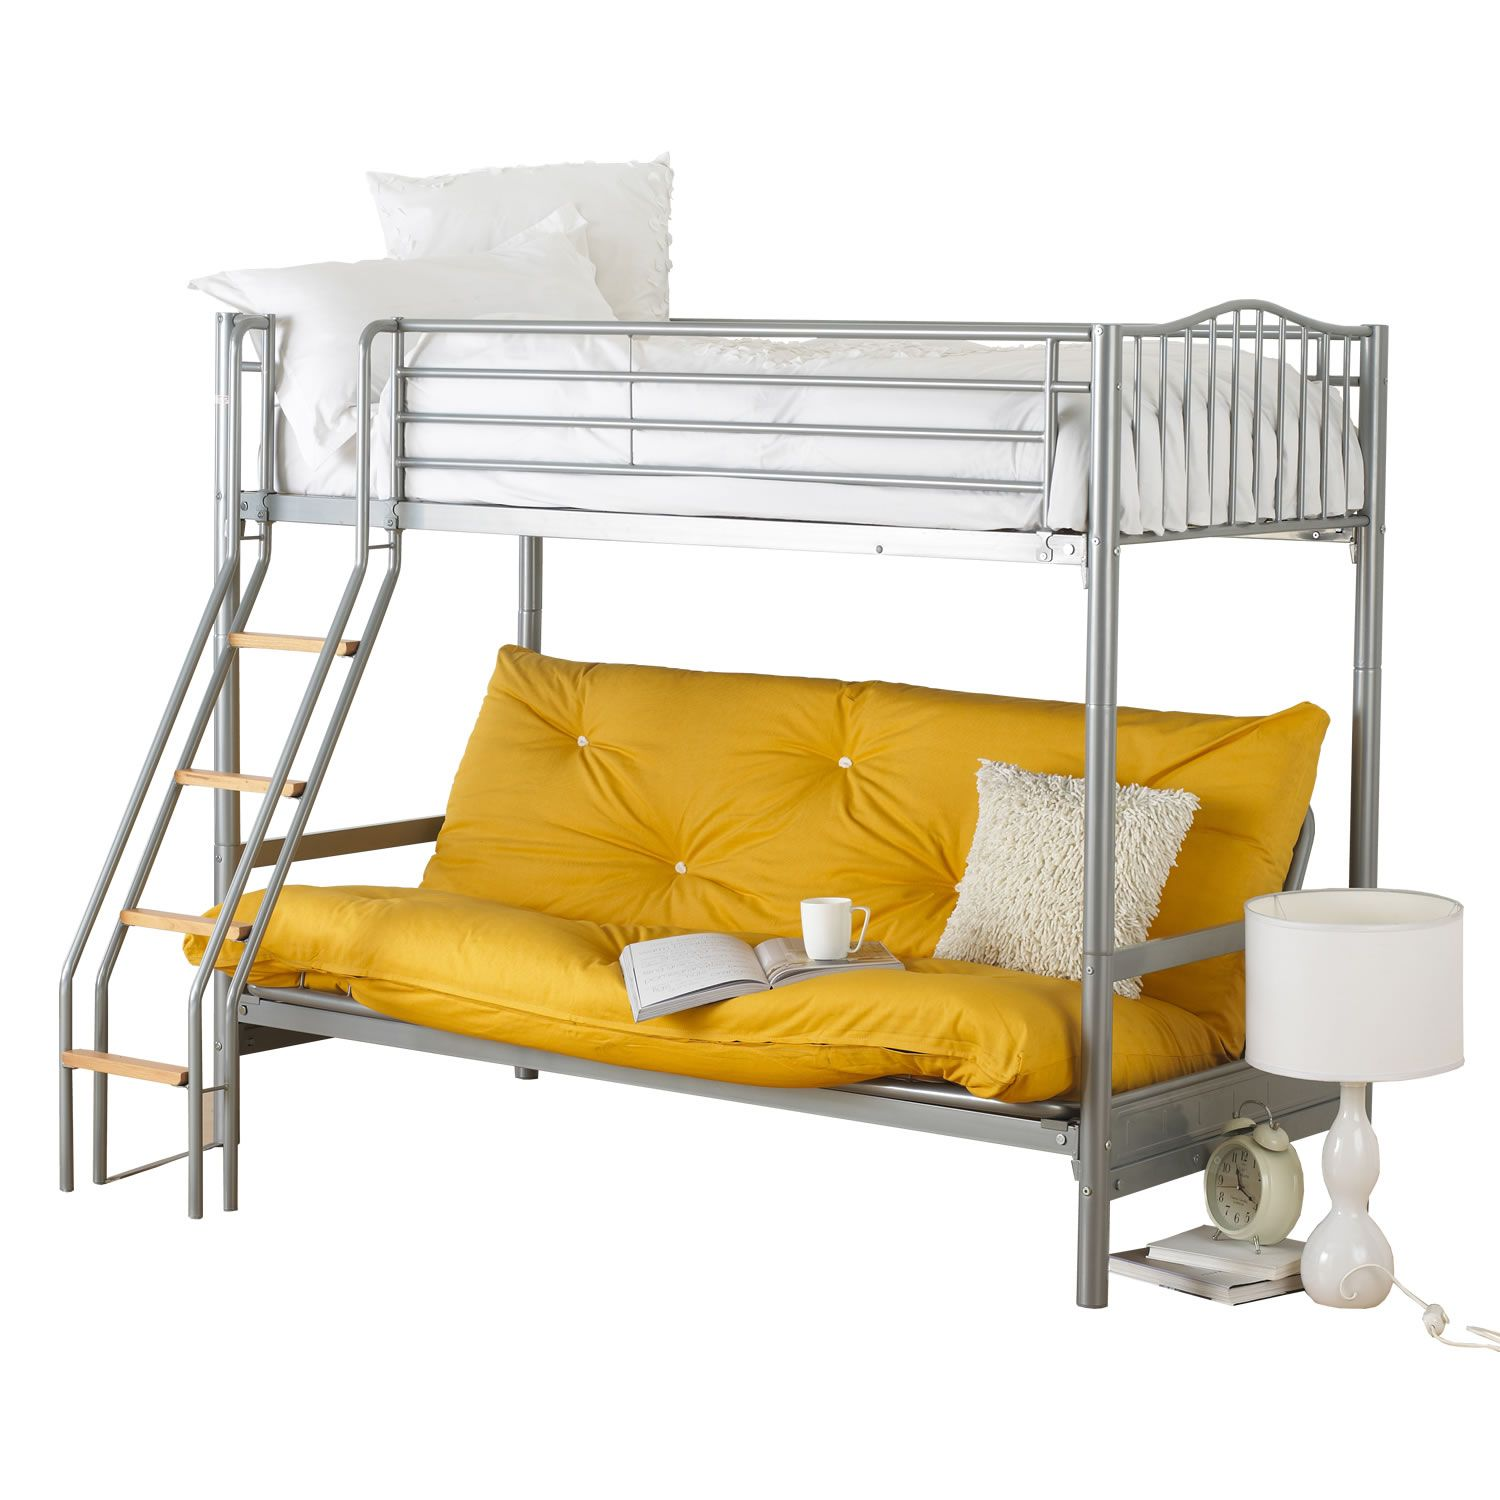 Alaska Futon Bunk Bed The Creates That Cool Sit Effect Raised Reached Via New Grab Handle Swimming Pool Ladder W